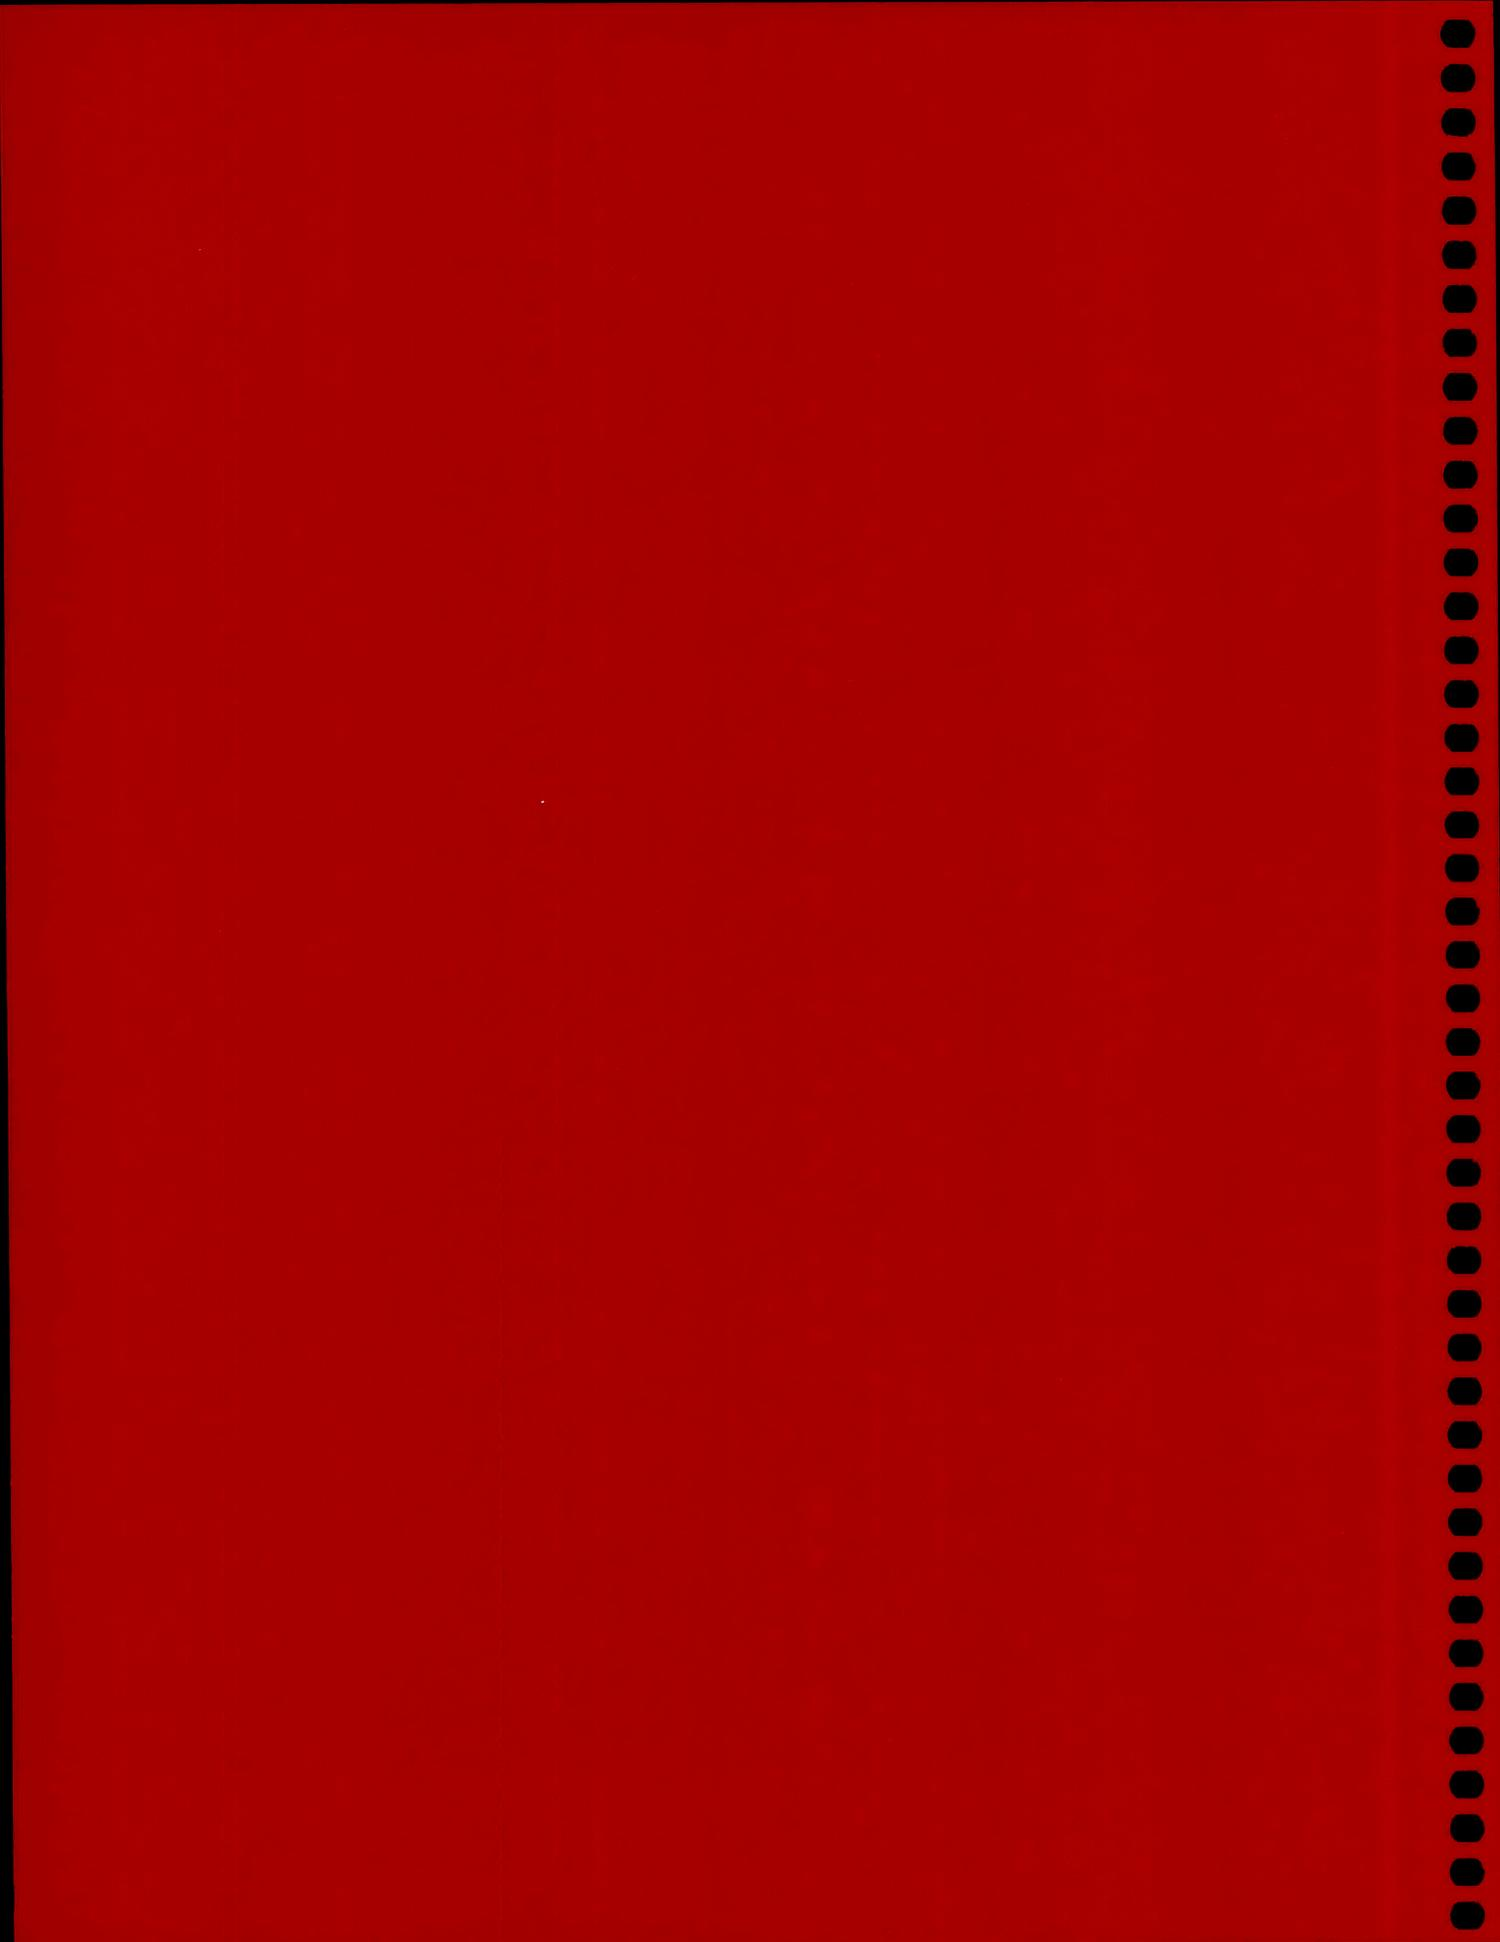 Texas Tech University Annual Financial Report: 2013                                                                                                      Inside Front Cover